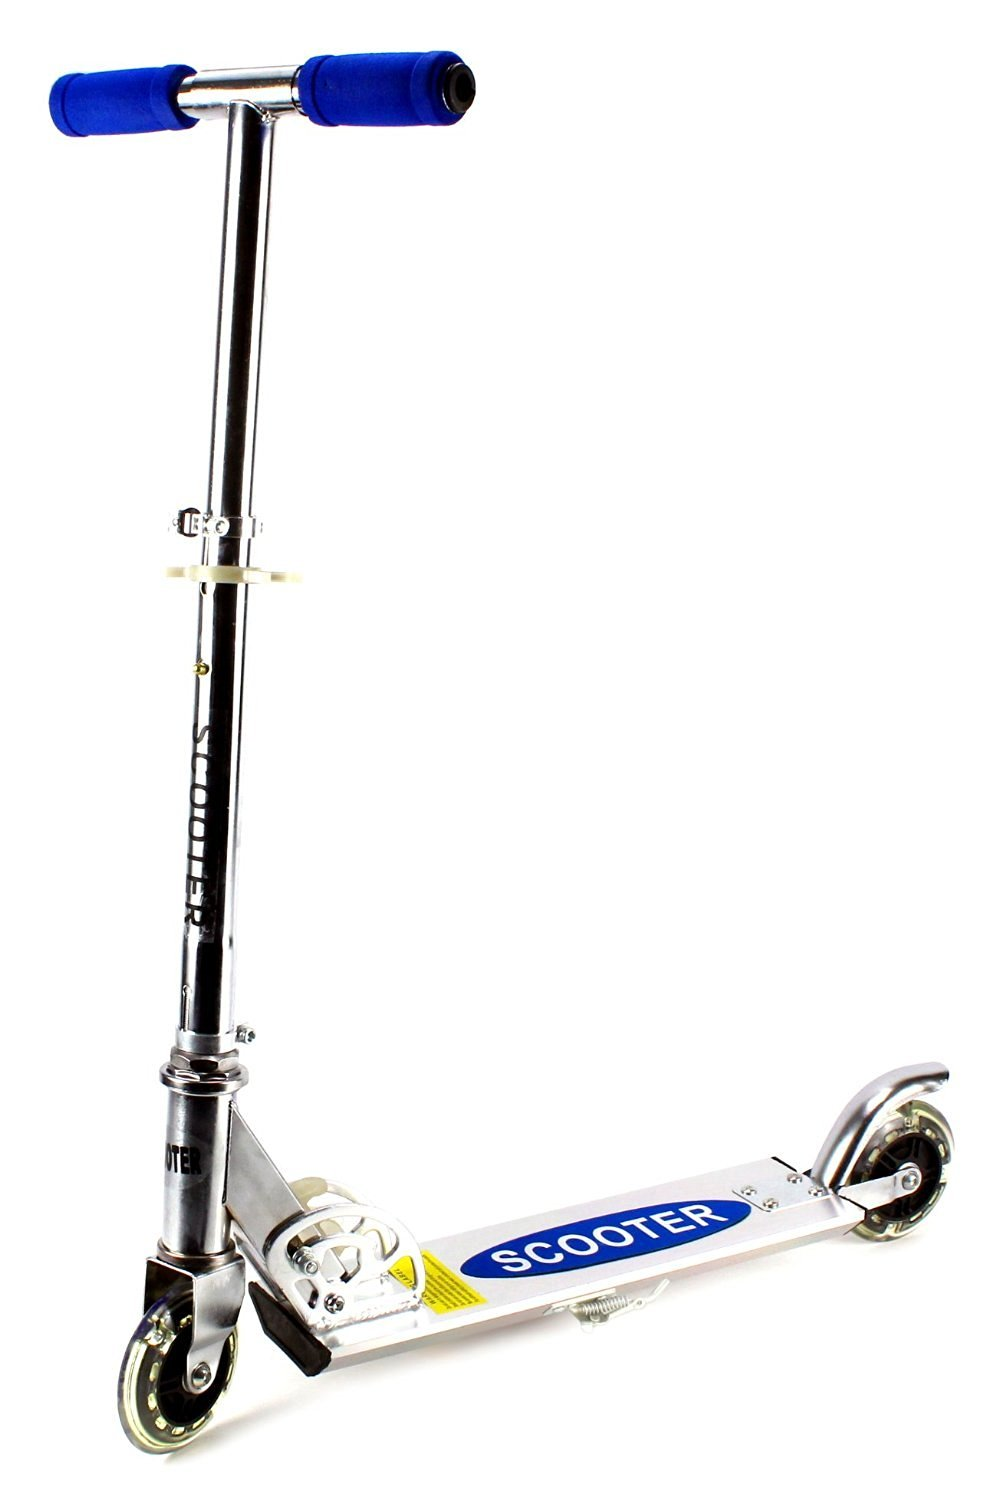 VT Roller AL Children's Two Wheeled Metal Toy Kick Scooter w/ Integrated Scooter Stand, Light Up Wheels (Blue)